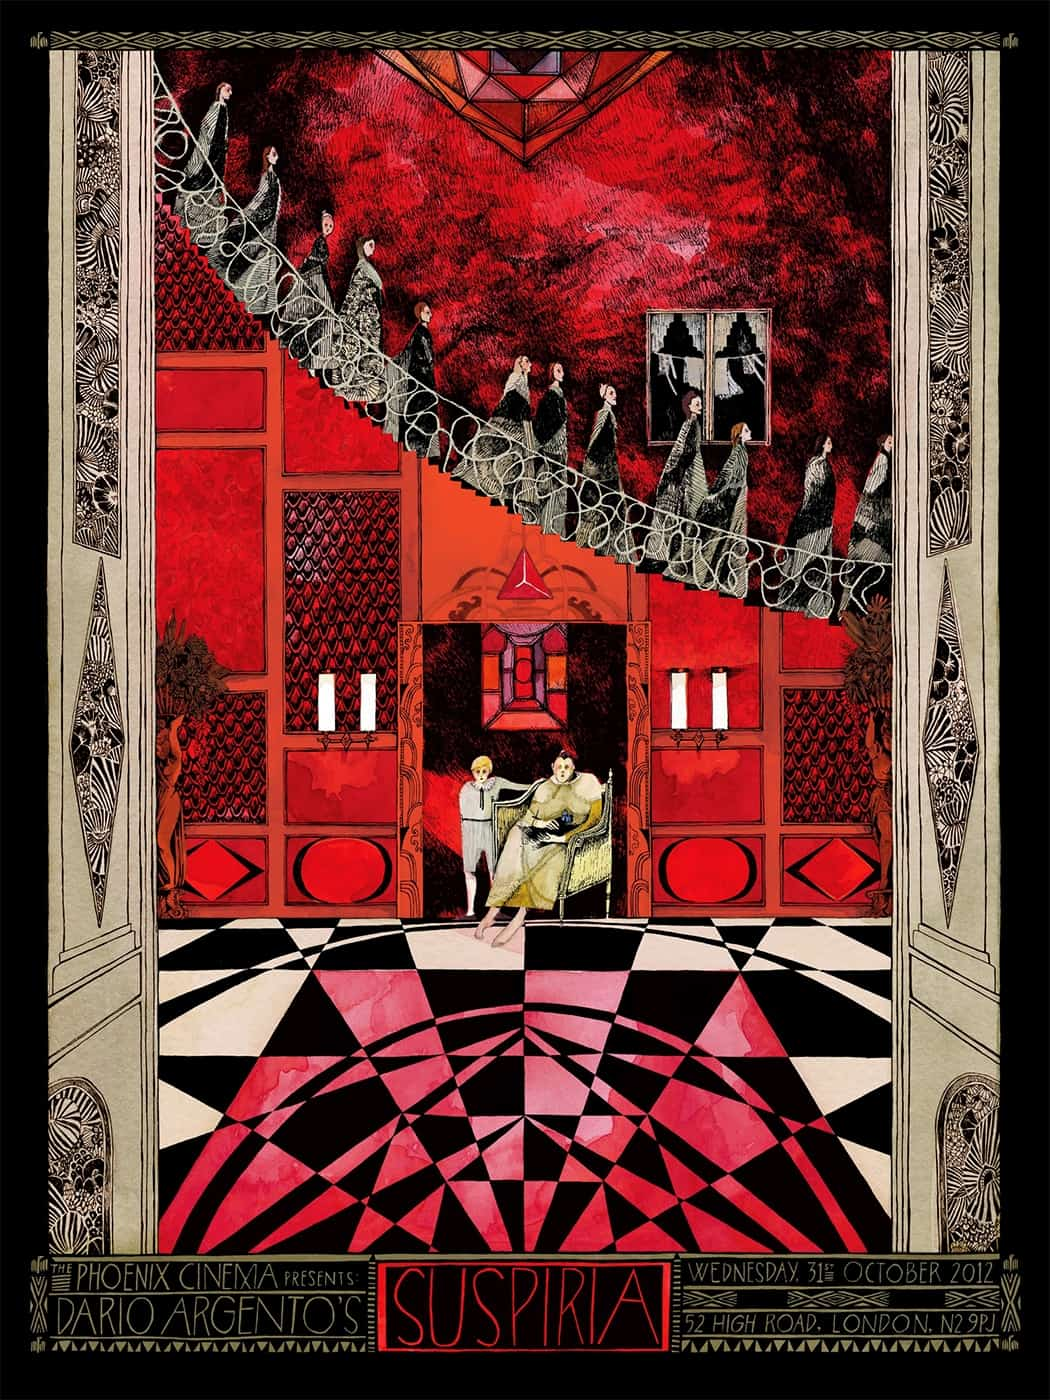 Movie Posters We Love: Suspiria